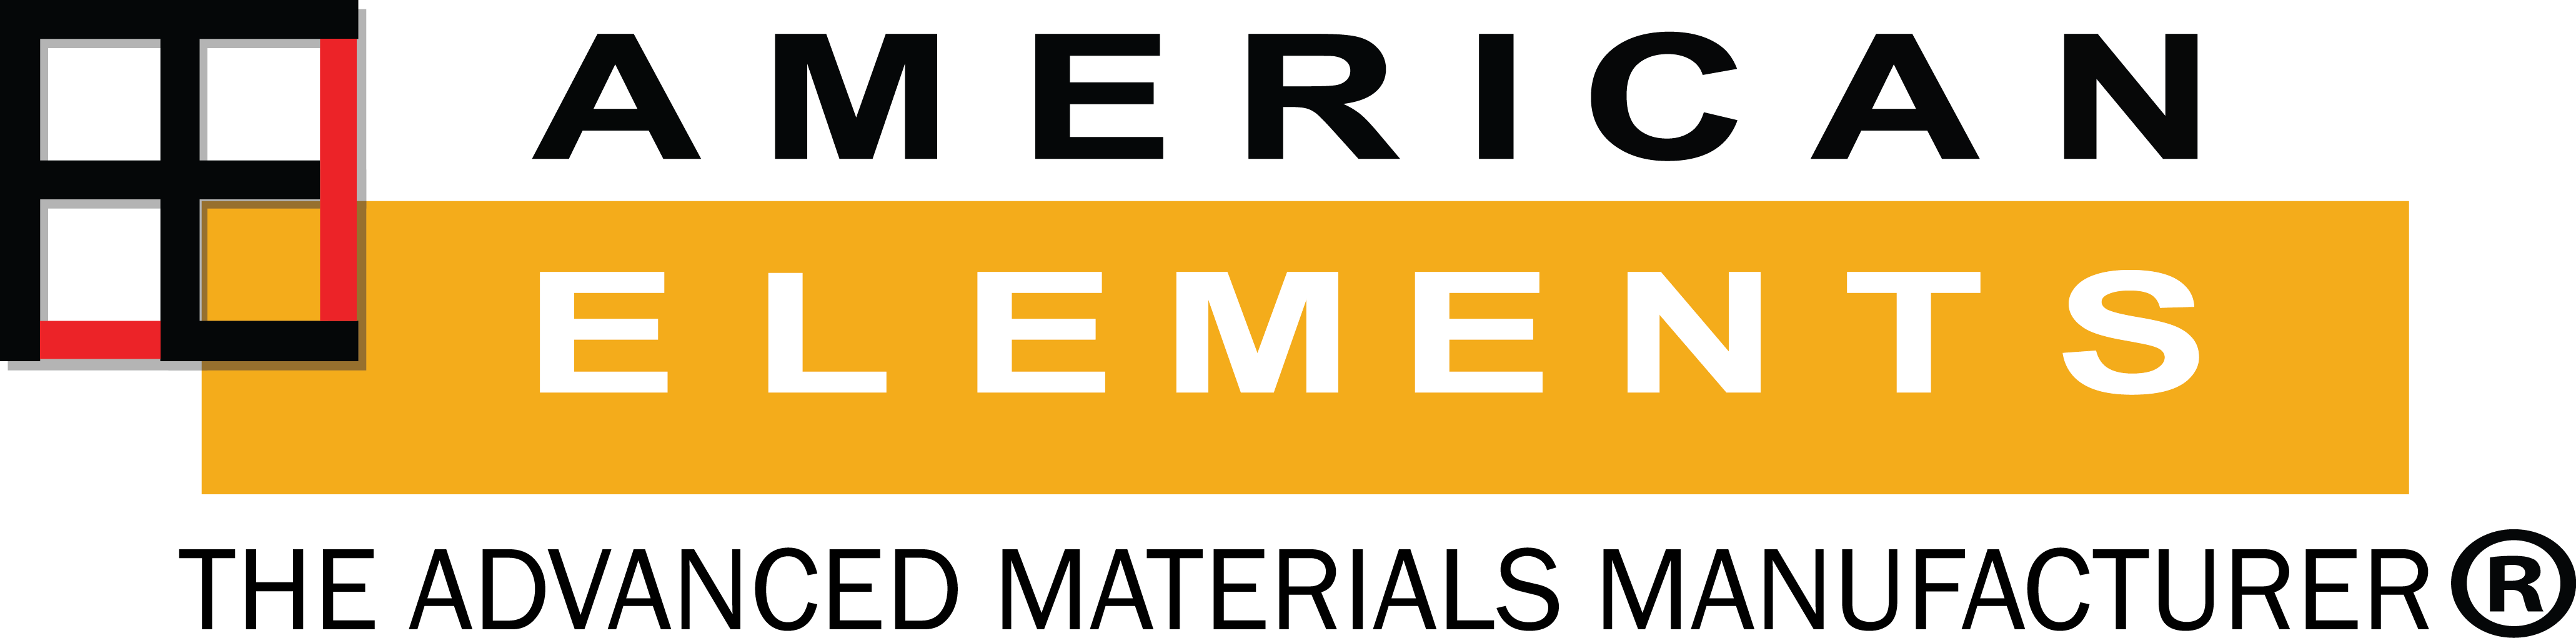 American Elements, global manufacturer of high purity metals, nanopowders, composites, biosensors, nanotubes for optics, biotechnology and nanospectroscopy applications